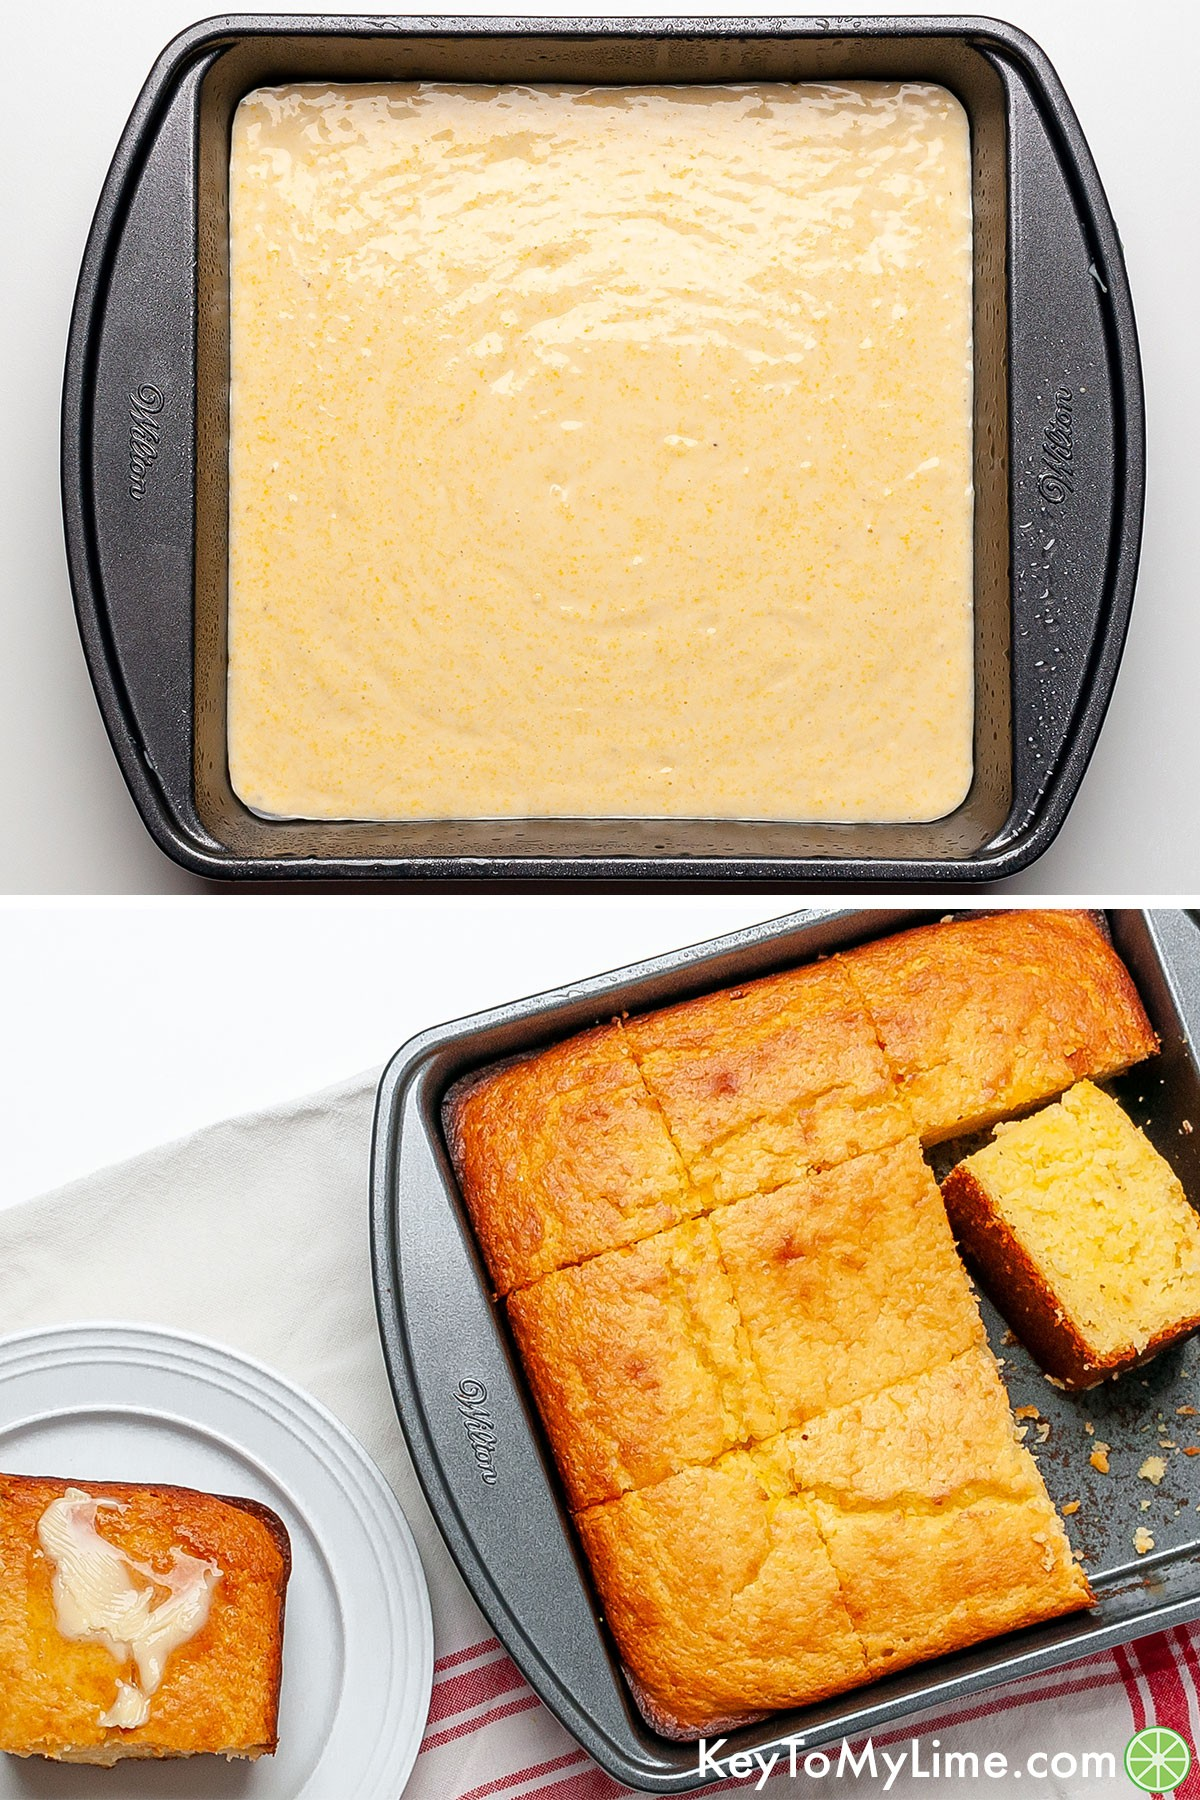 A process collage showing Jiffy cornbread before and after baking.